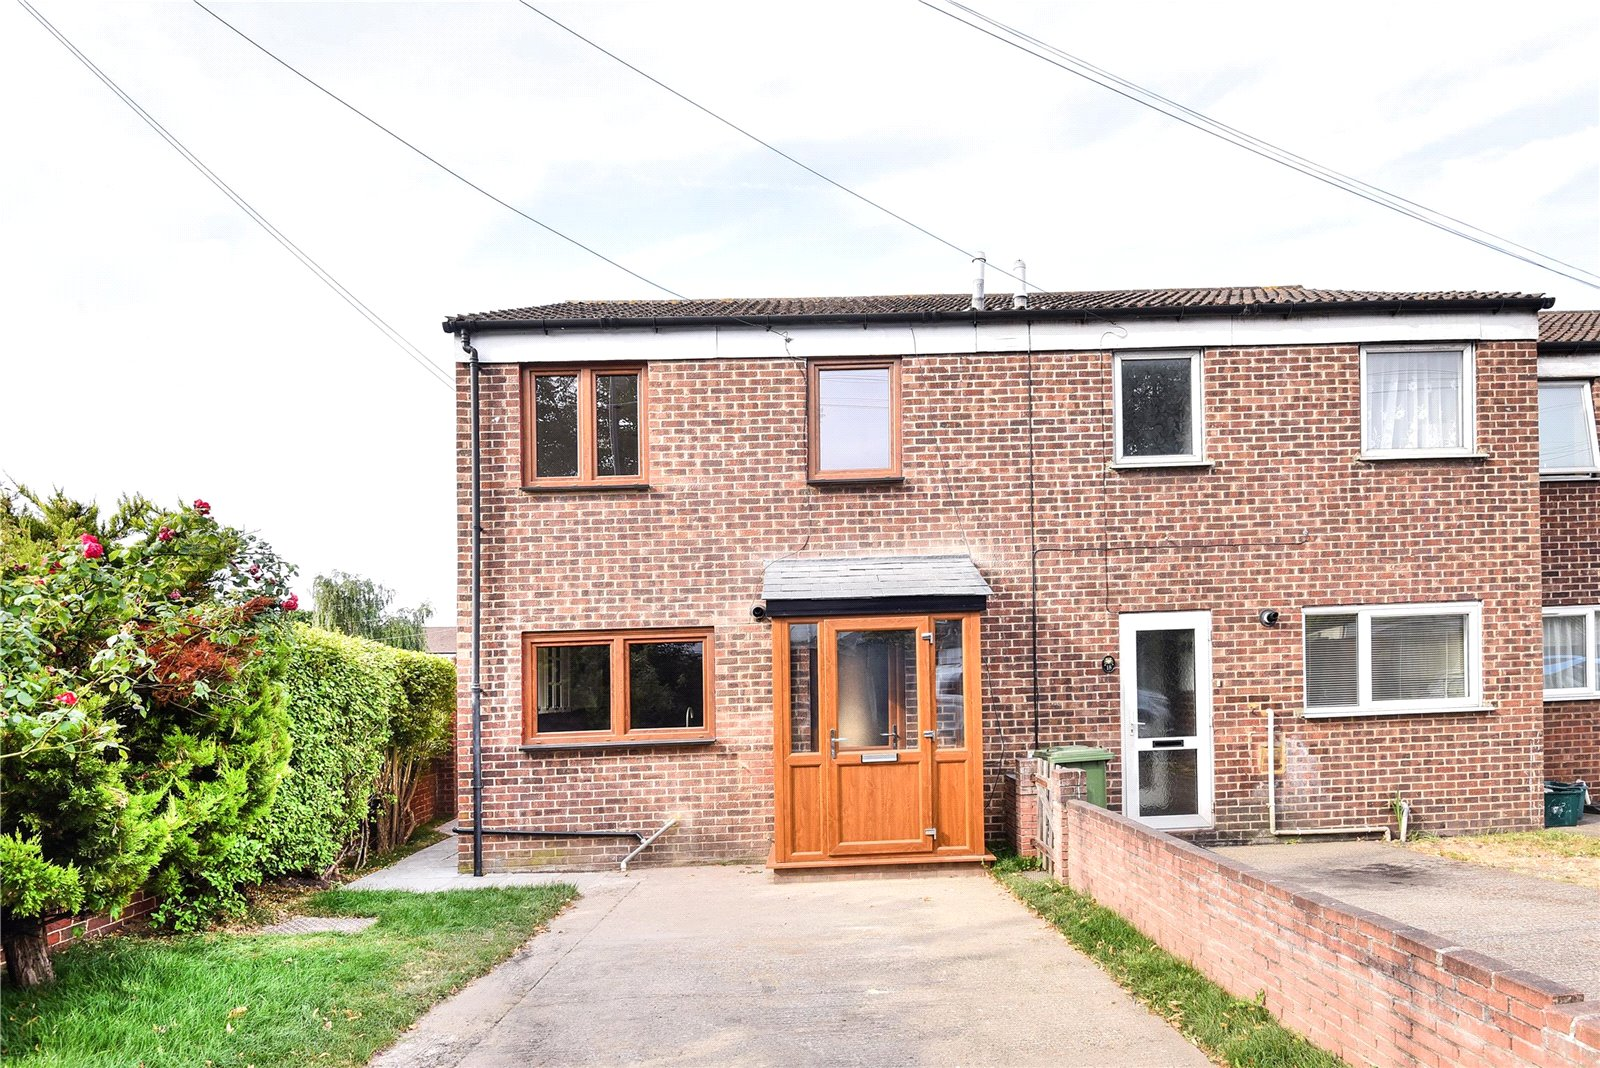 3 bed house for sale in Streatham  - Property Image 5